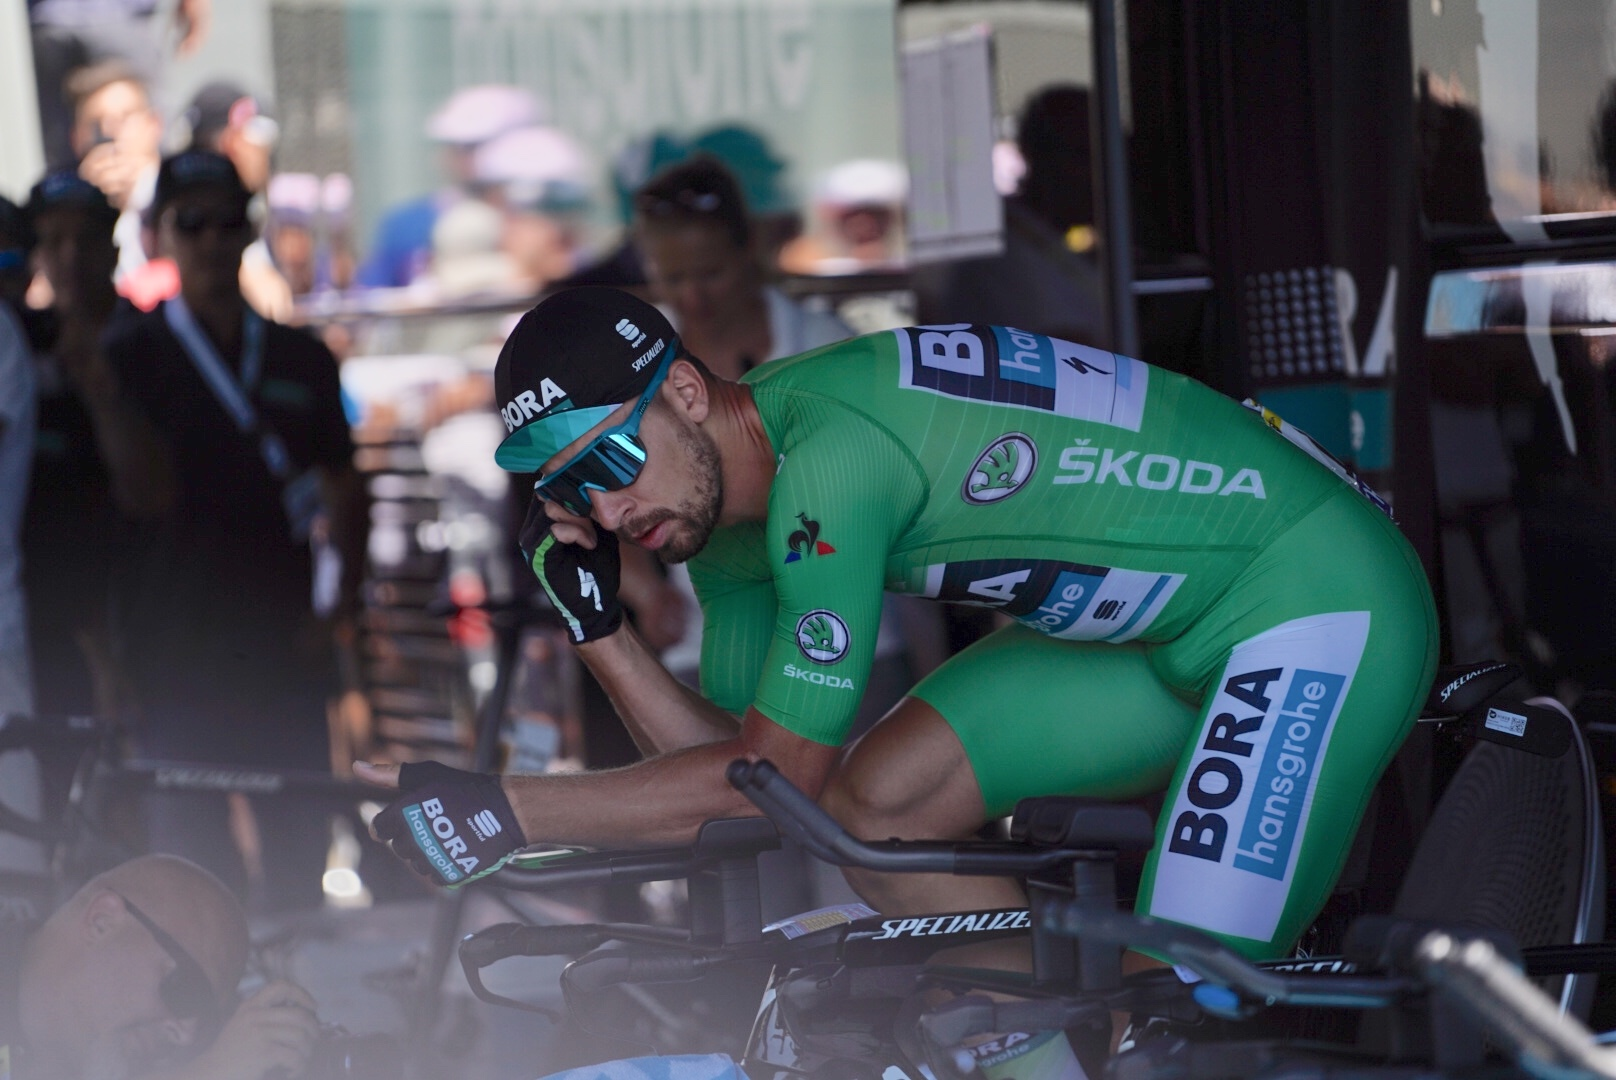 Peter Sagan warms up in Green yet again